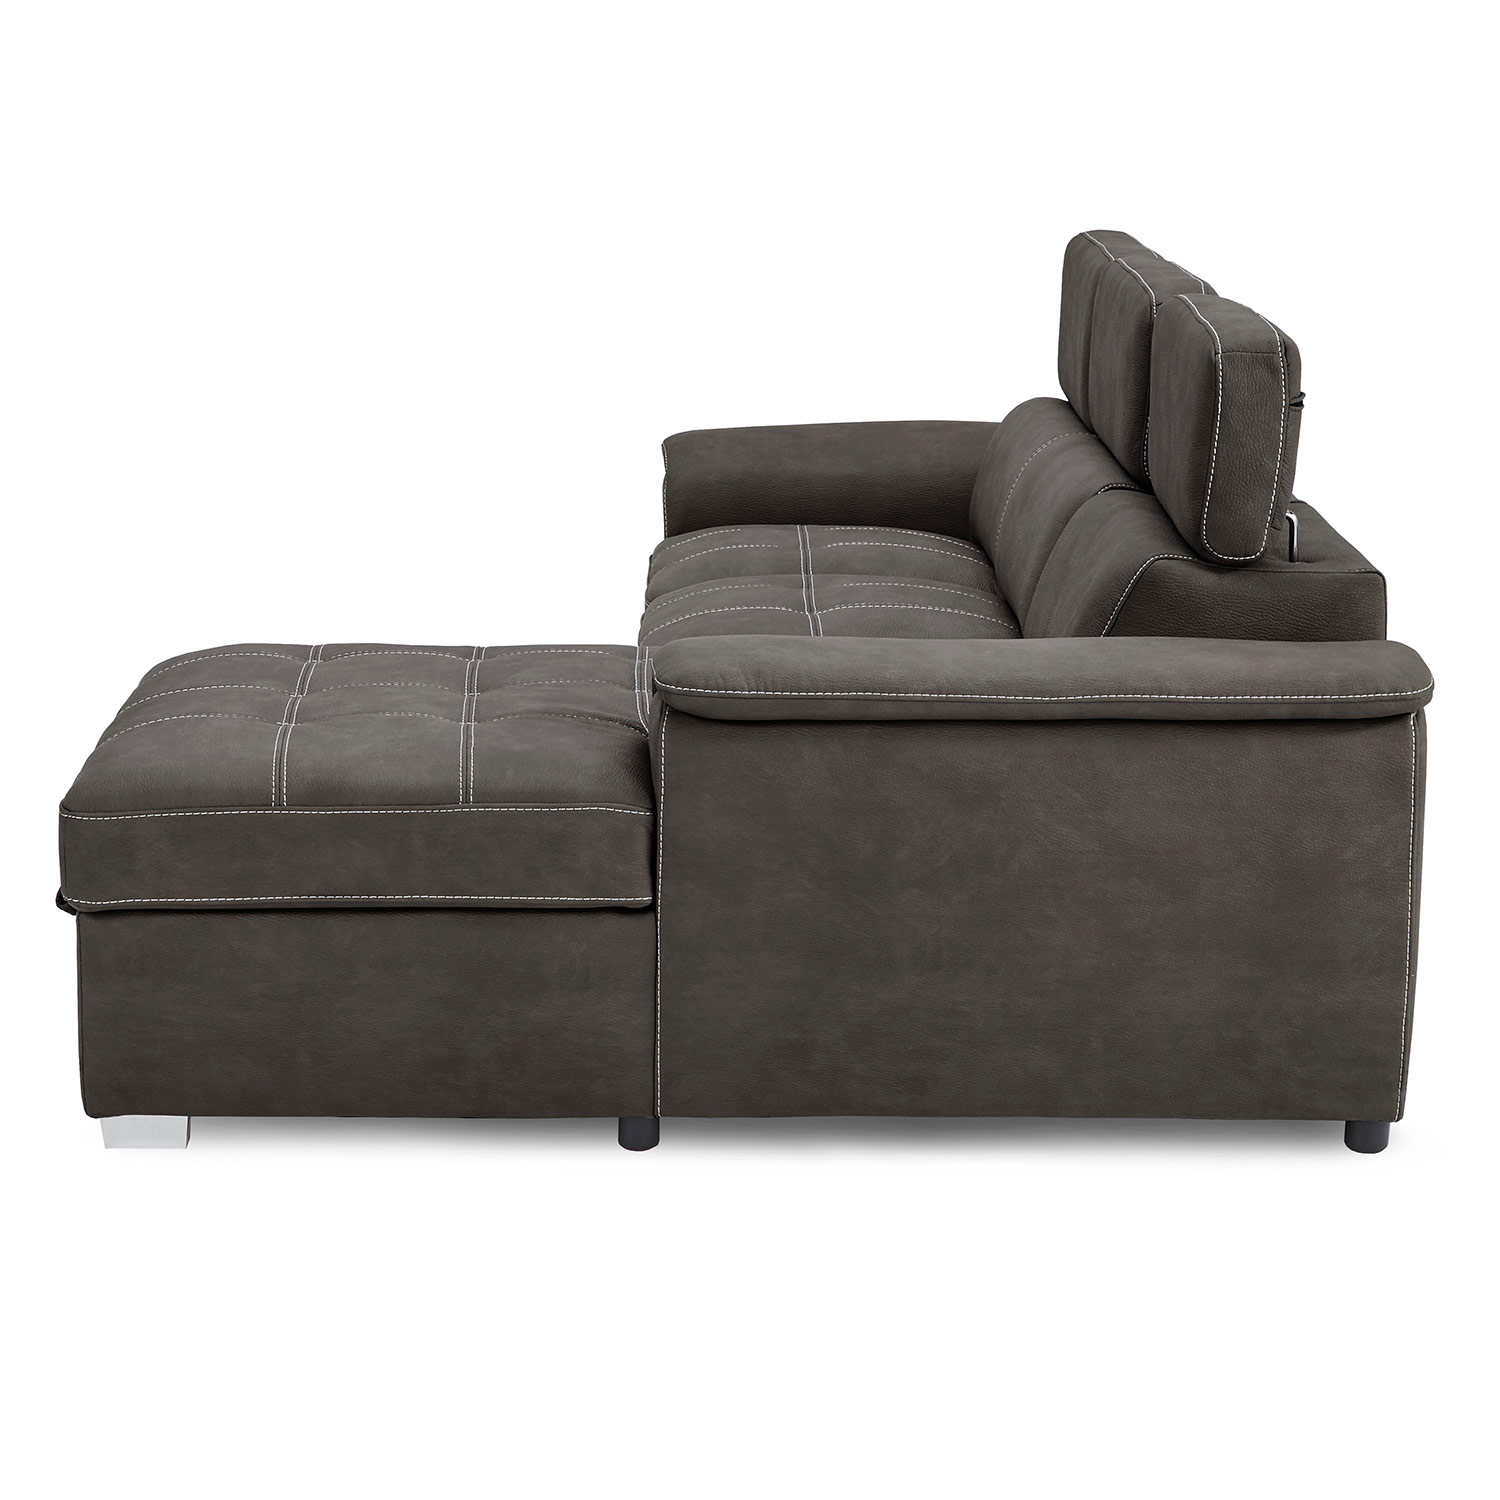 Homelegance Ferriday Sectional with Pull-out Bed and Hidden Storage - Taupe